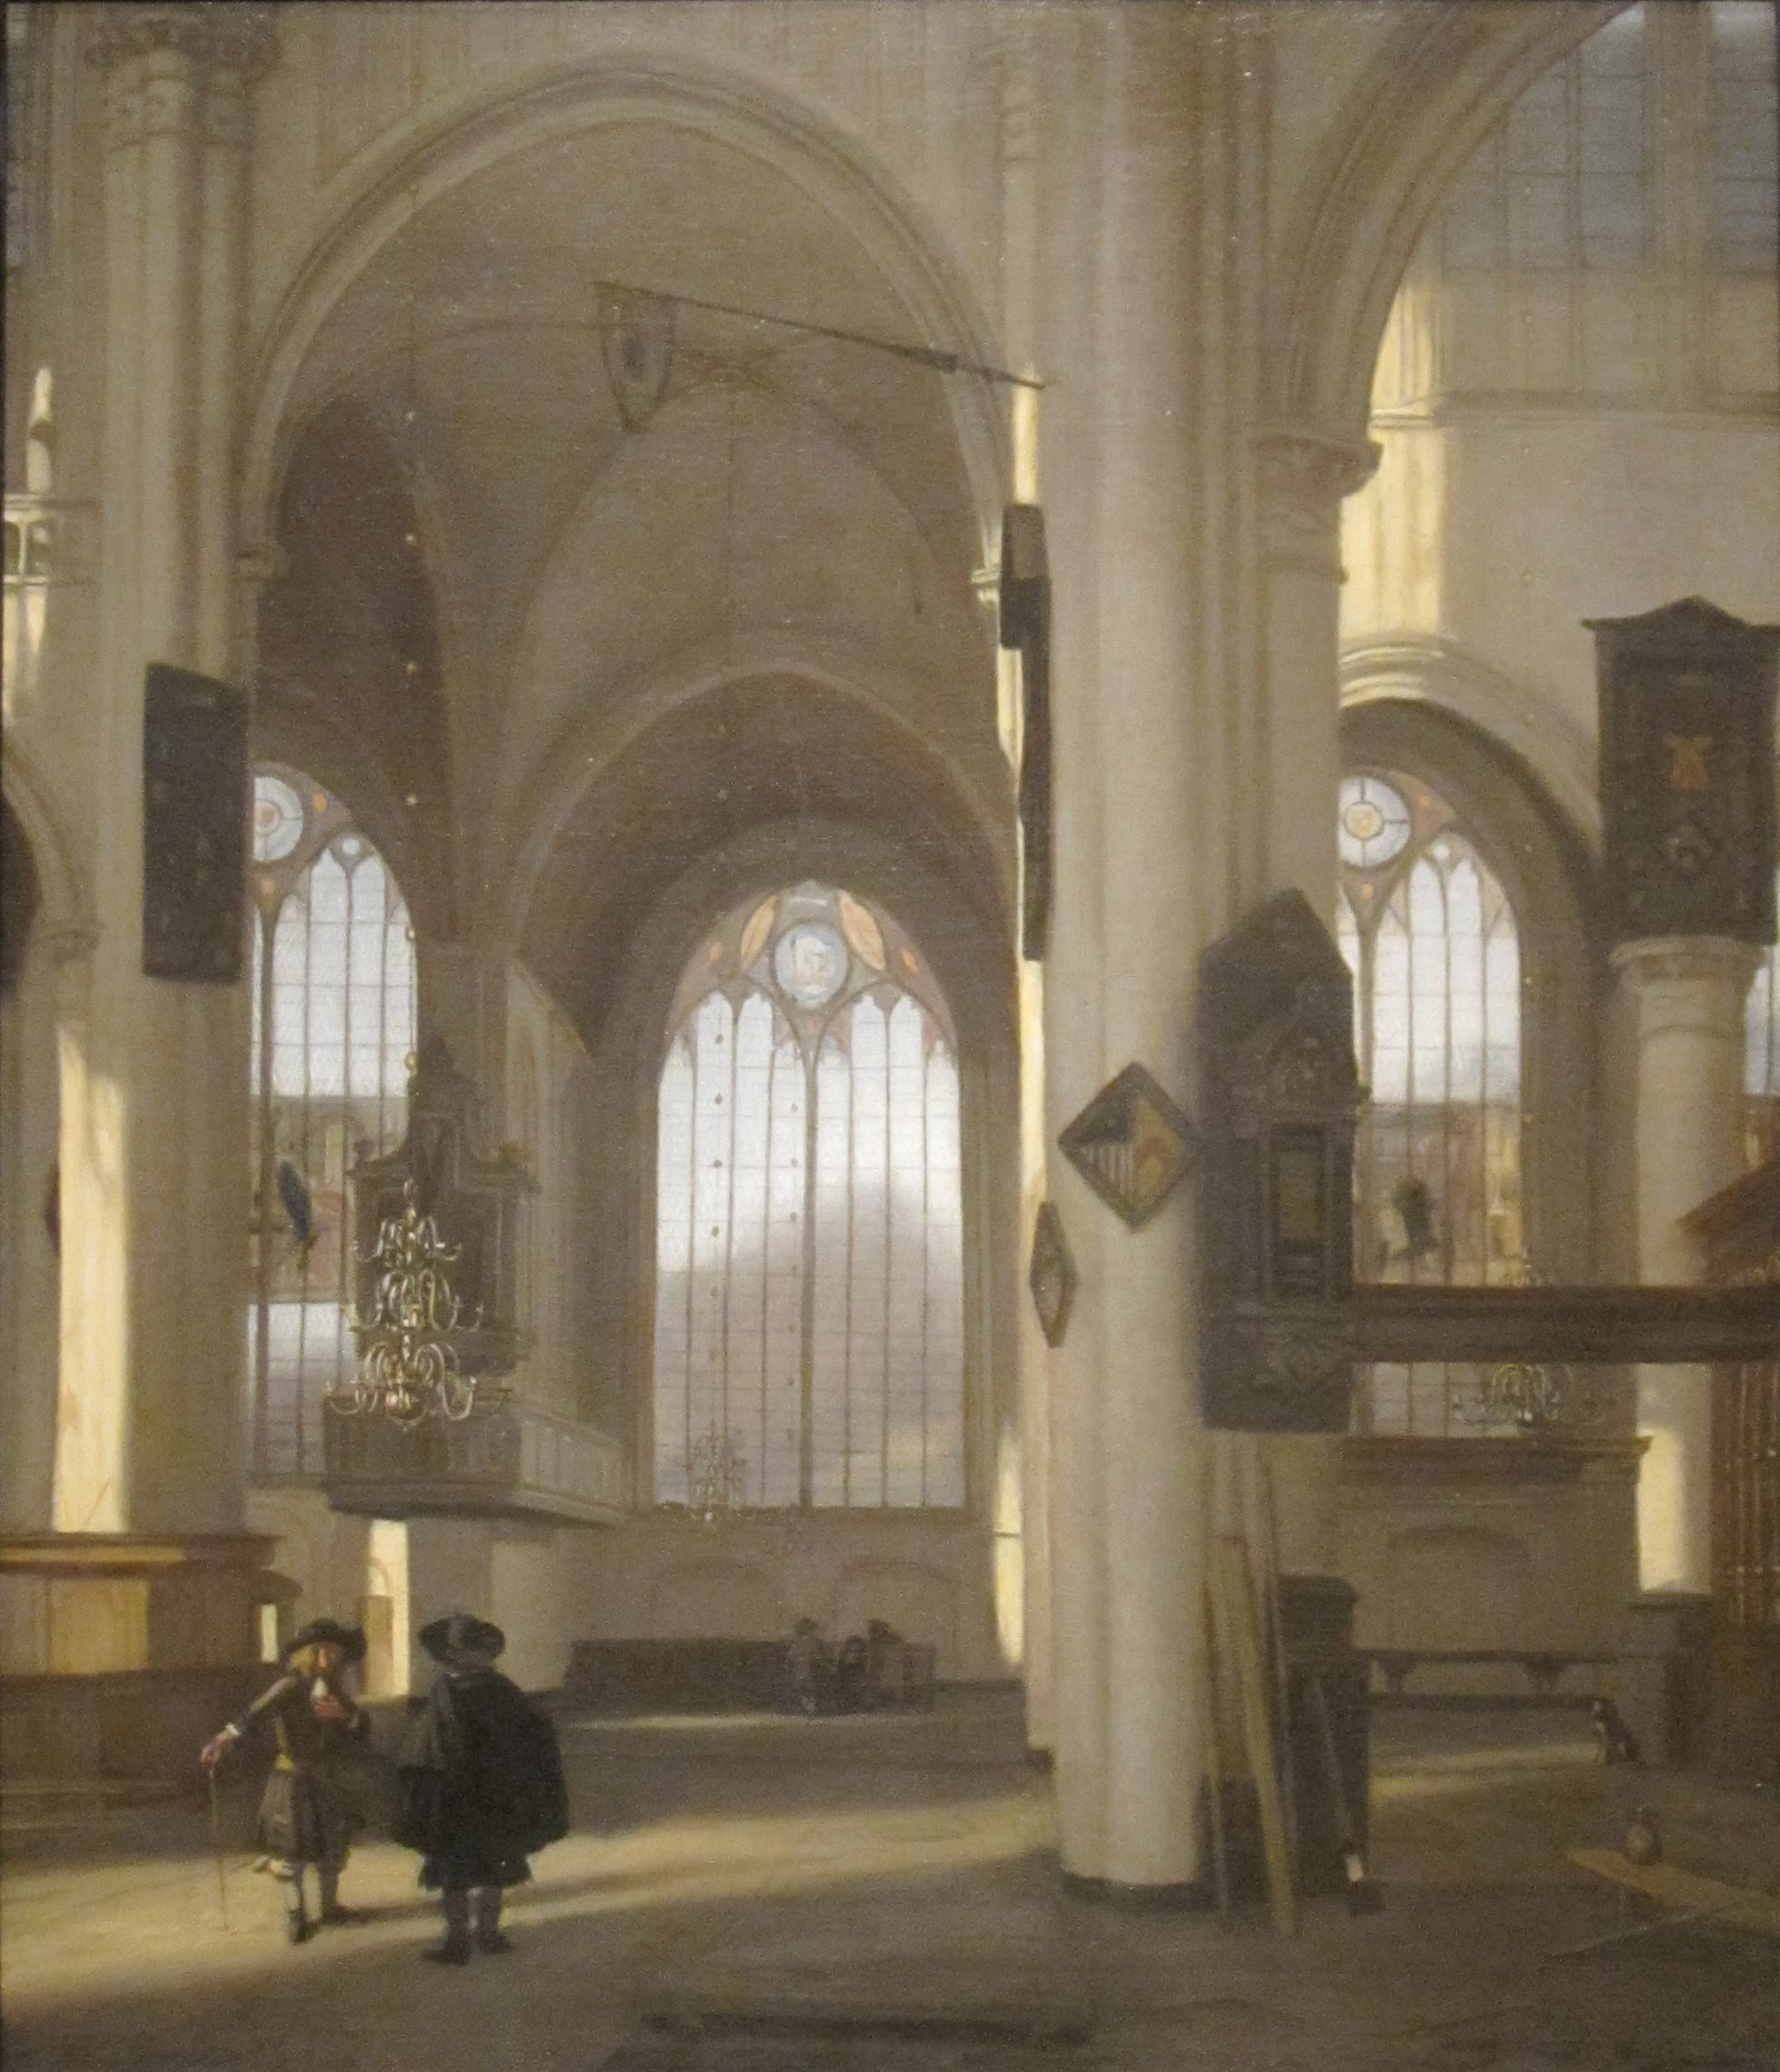 file 39 interior of a church 39 oil on canvas painting by. Black Bedroom Furniture Sets. Home Design Ideas